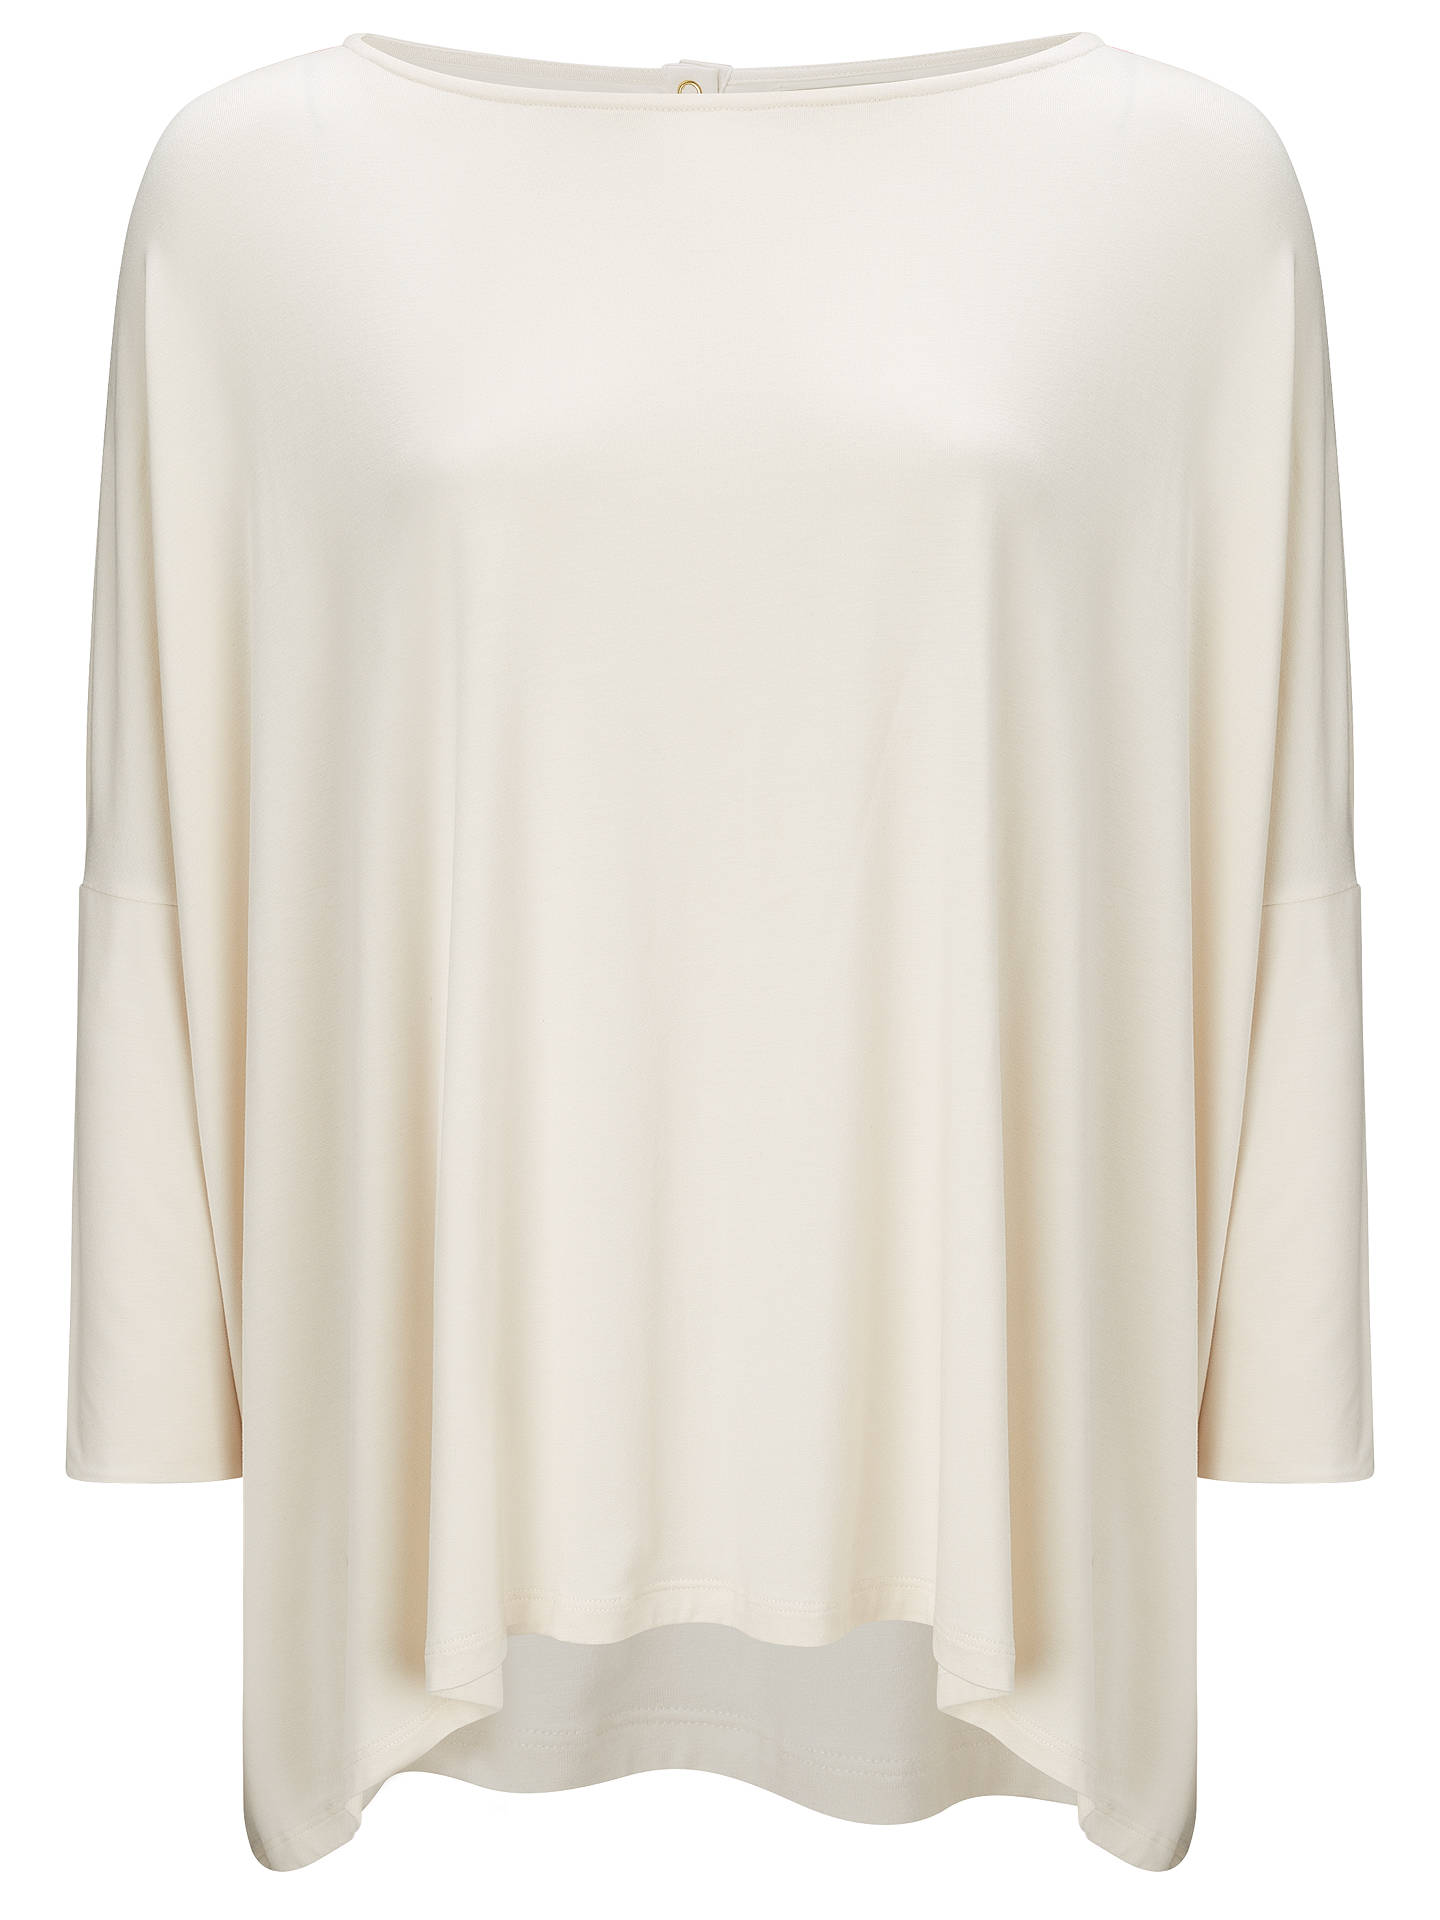 BuySomerset by Alice Temperley Oversized Top, Cream, S Online at johnlewis.com